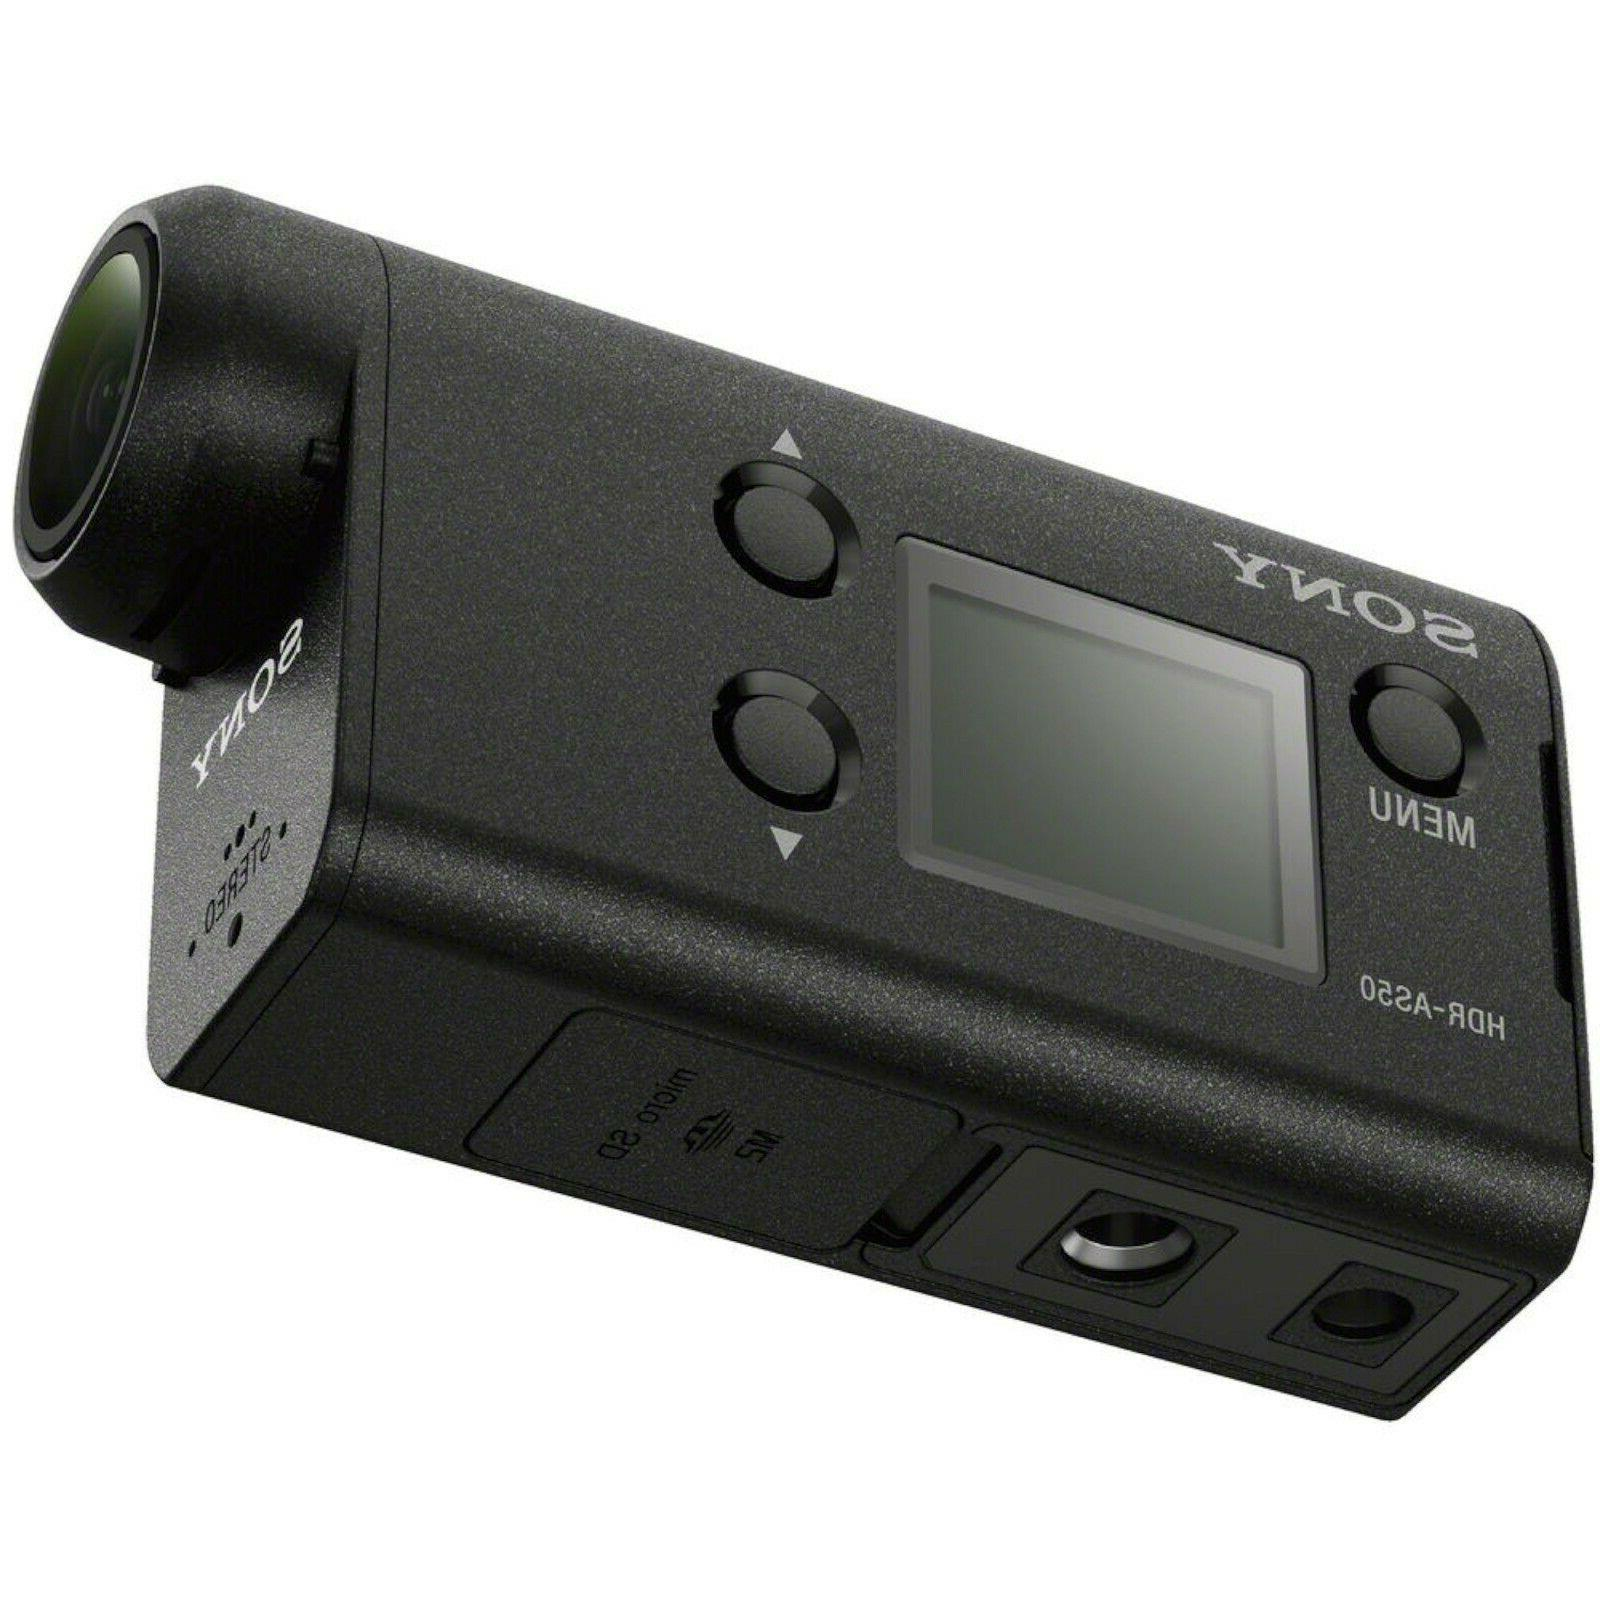 NEW Action Cam HDR-AS50R HD Camera Live View Remote